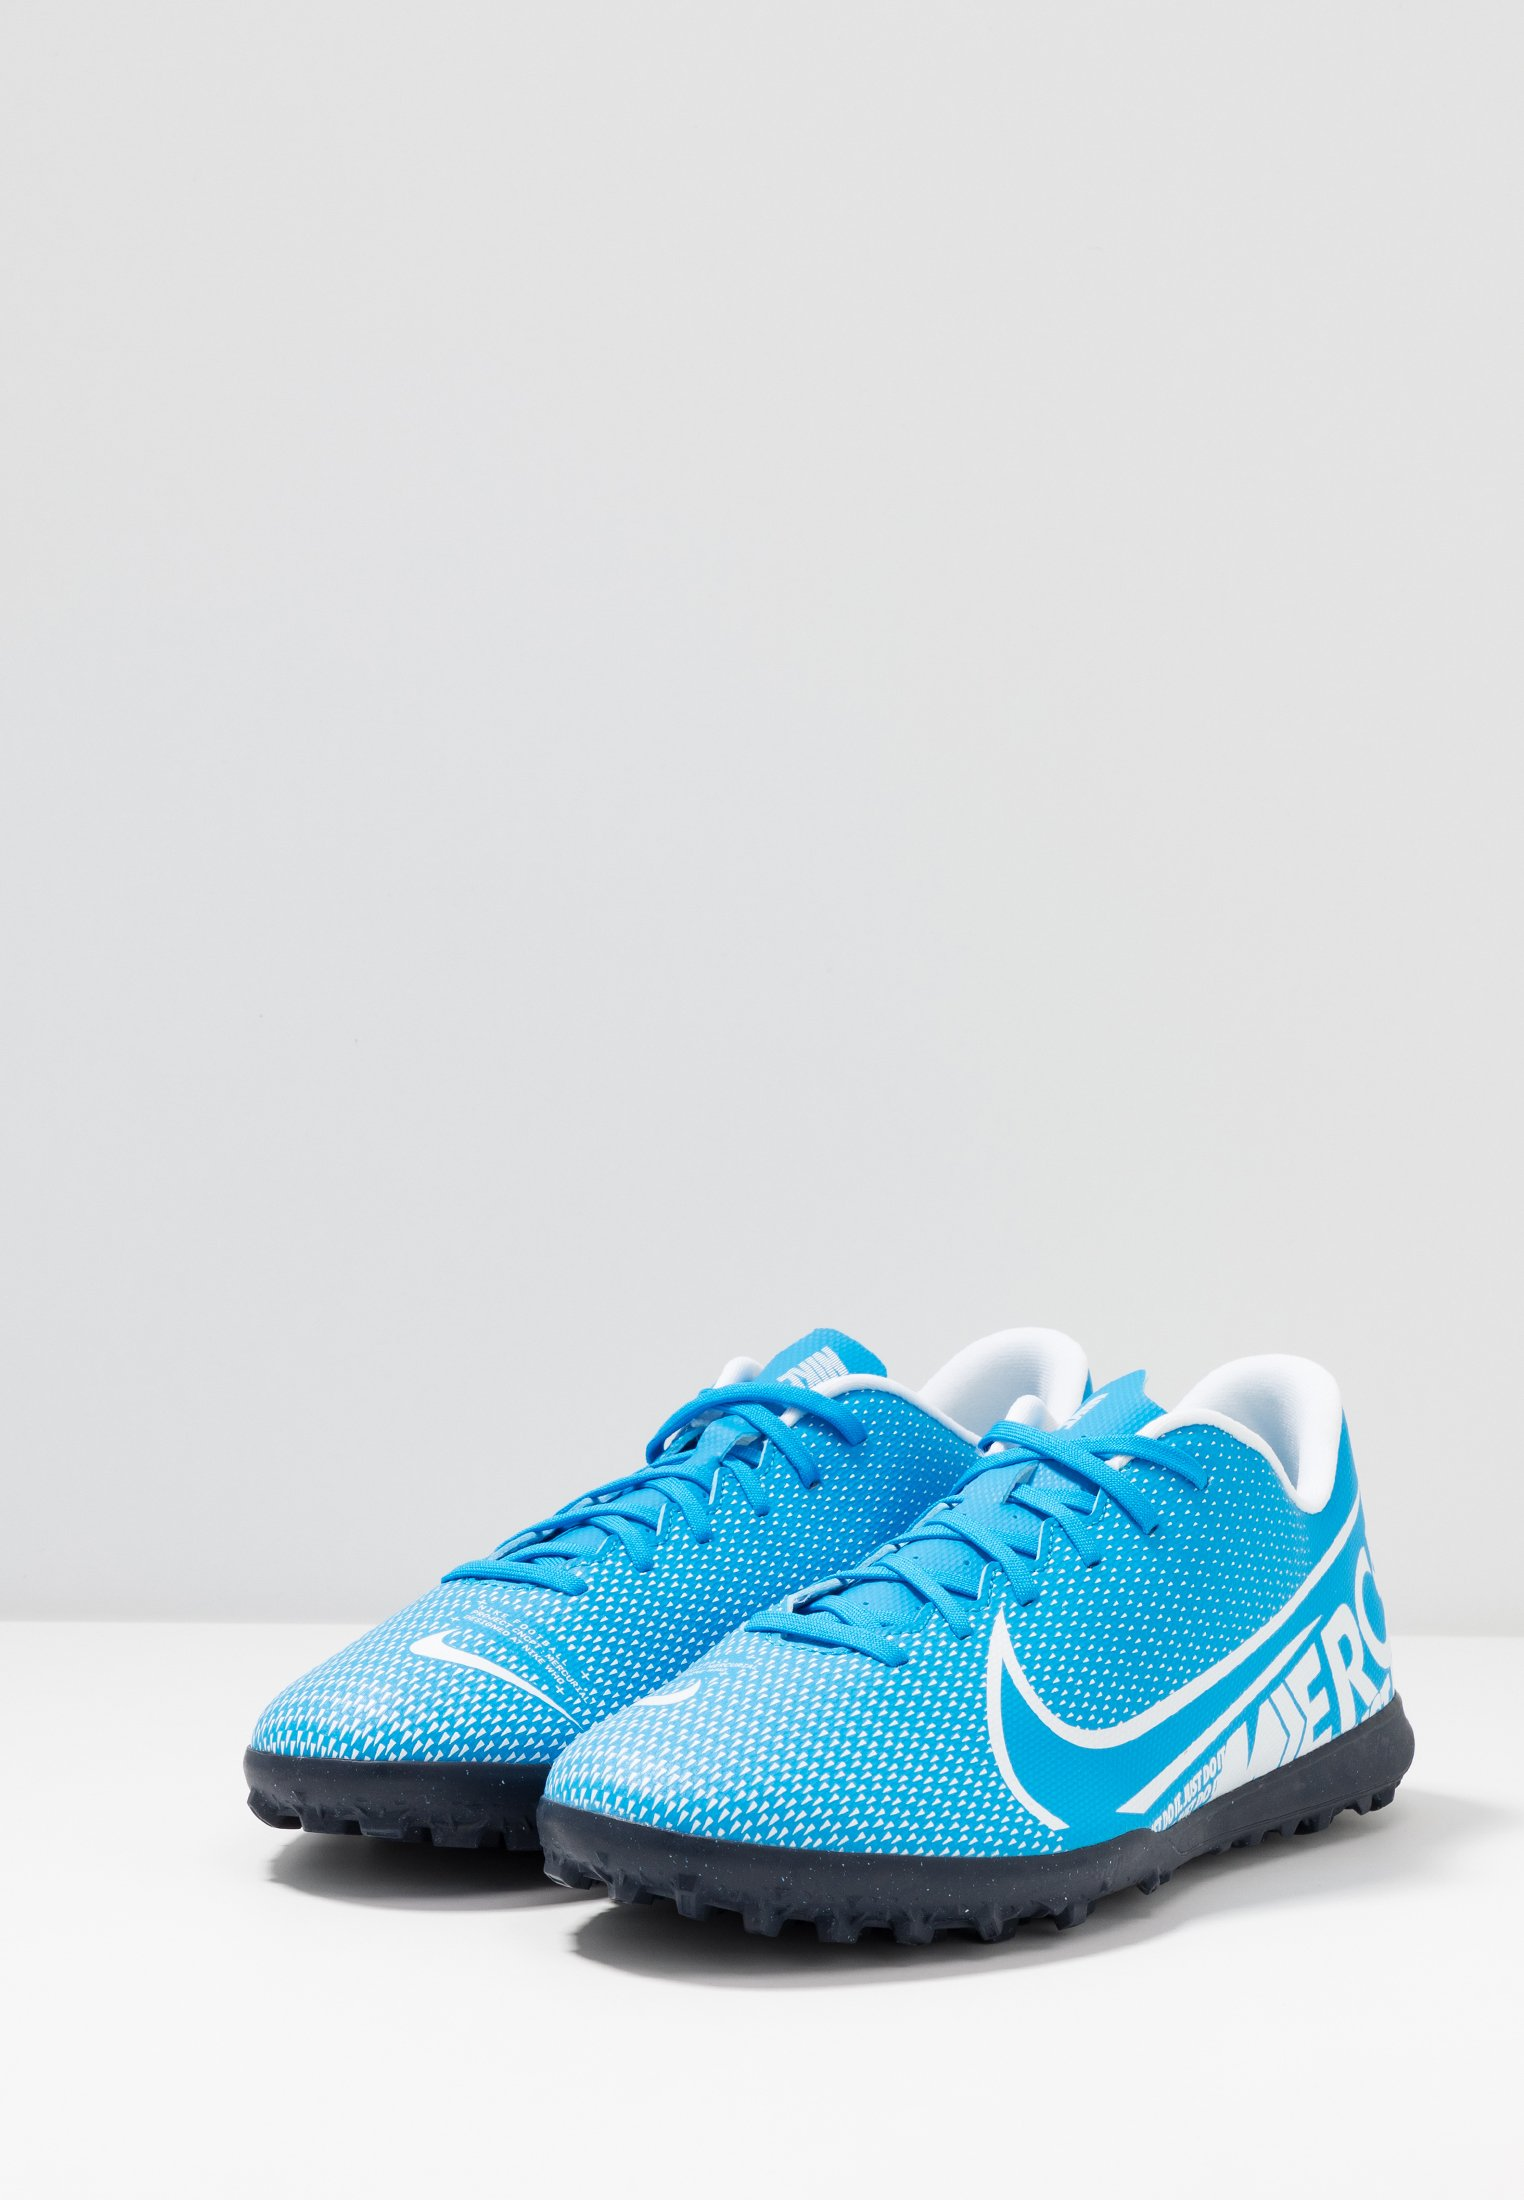 Nike obsidian Multicrampons Performance Foot Blue Hero De 13 Vapor Club TfChaussures white w0OPnk